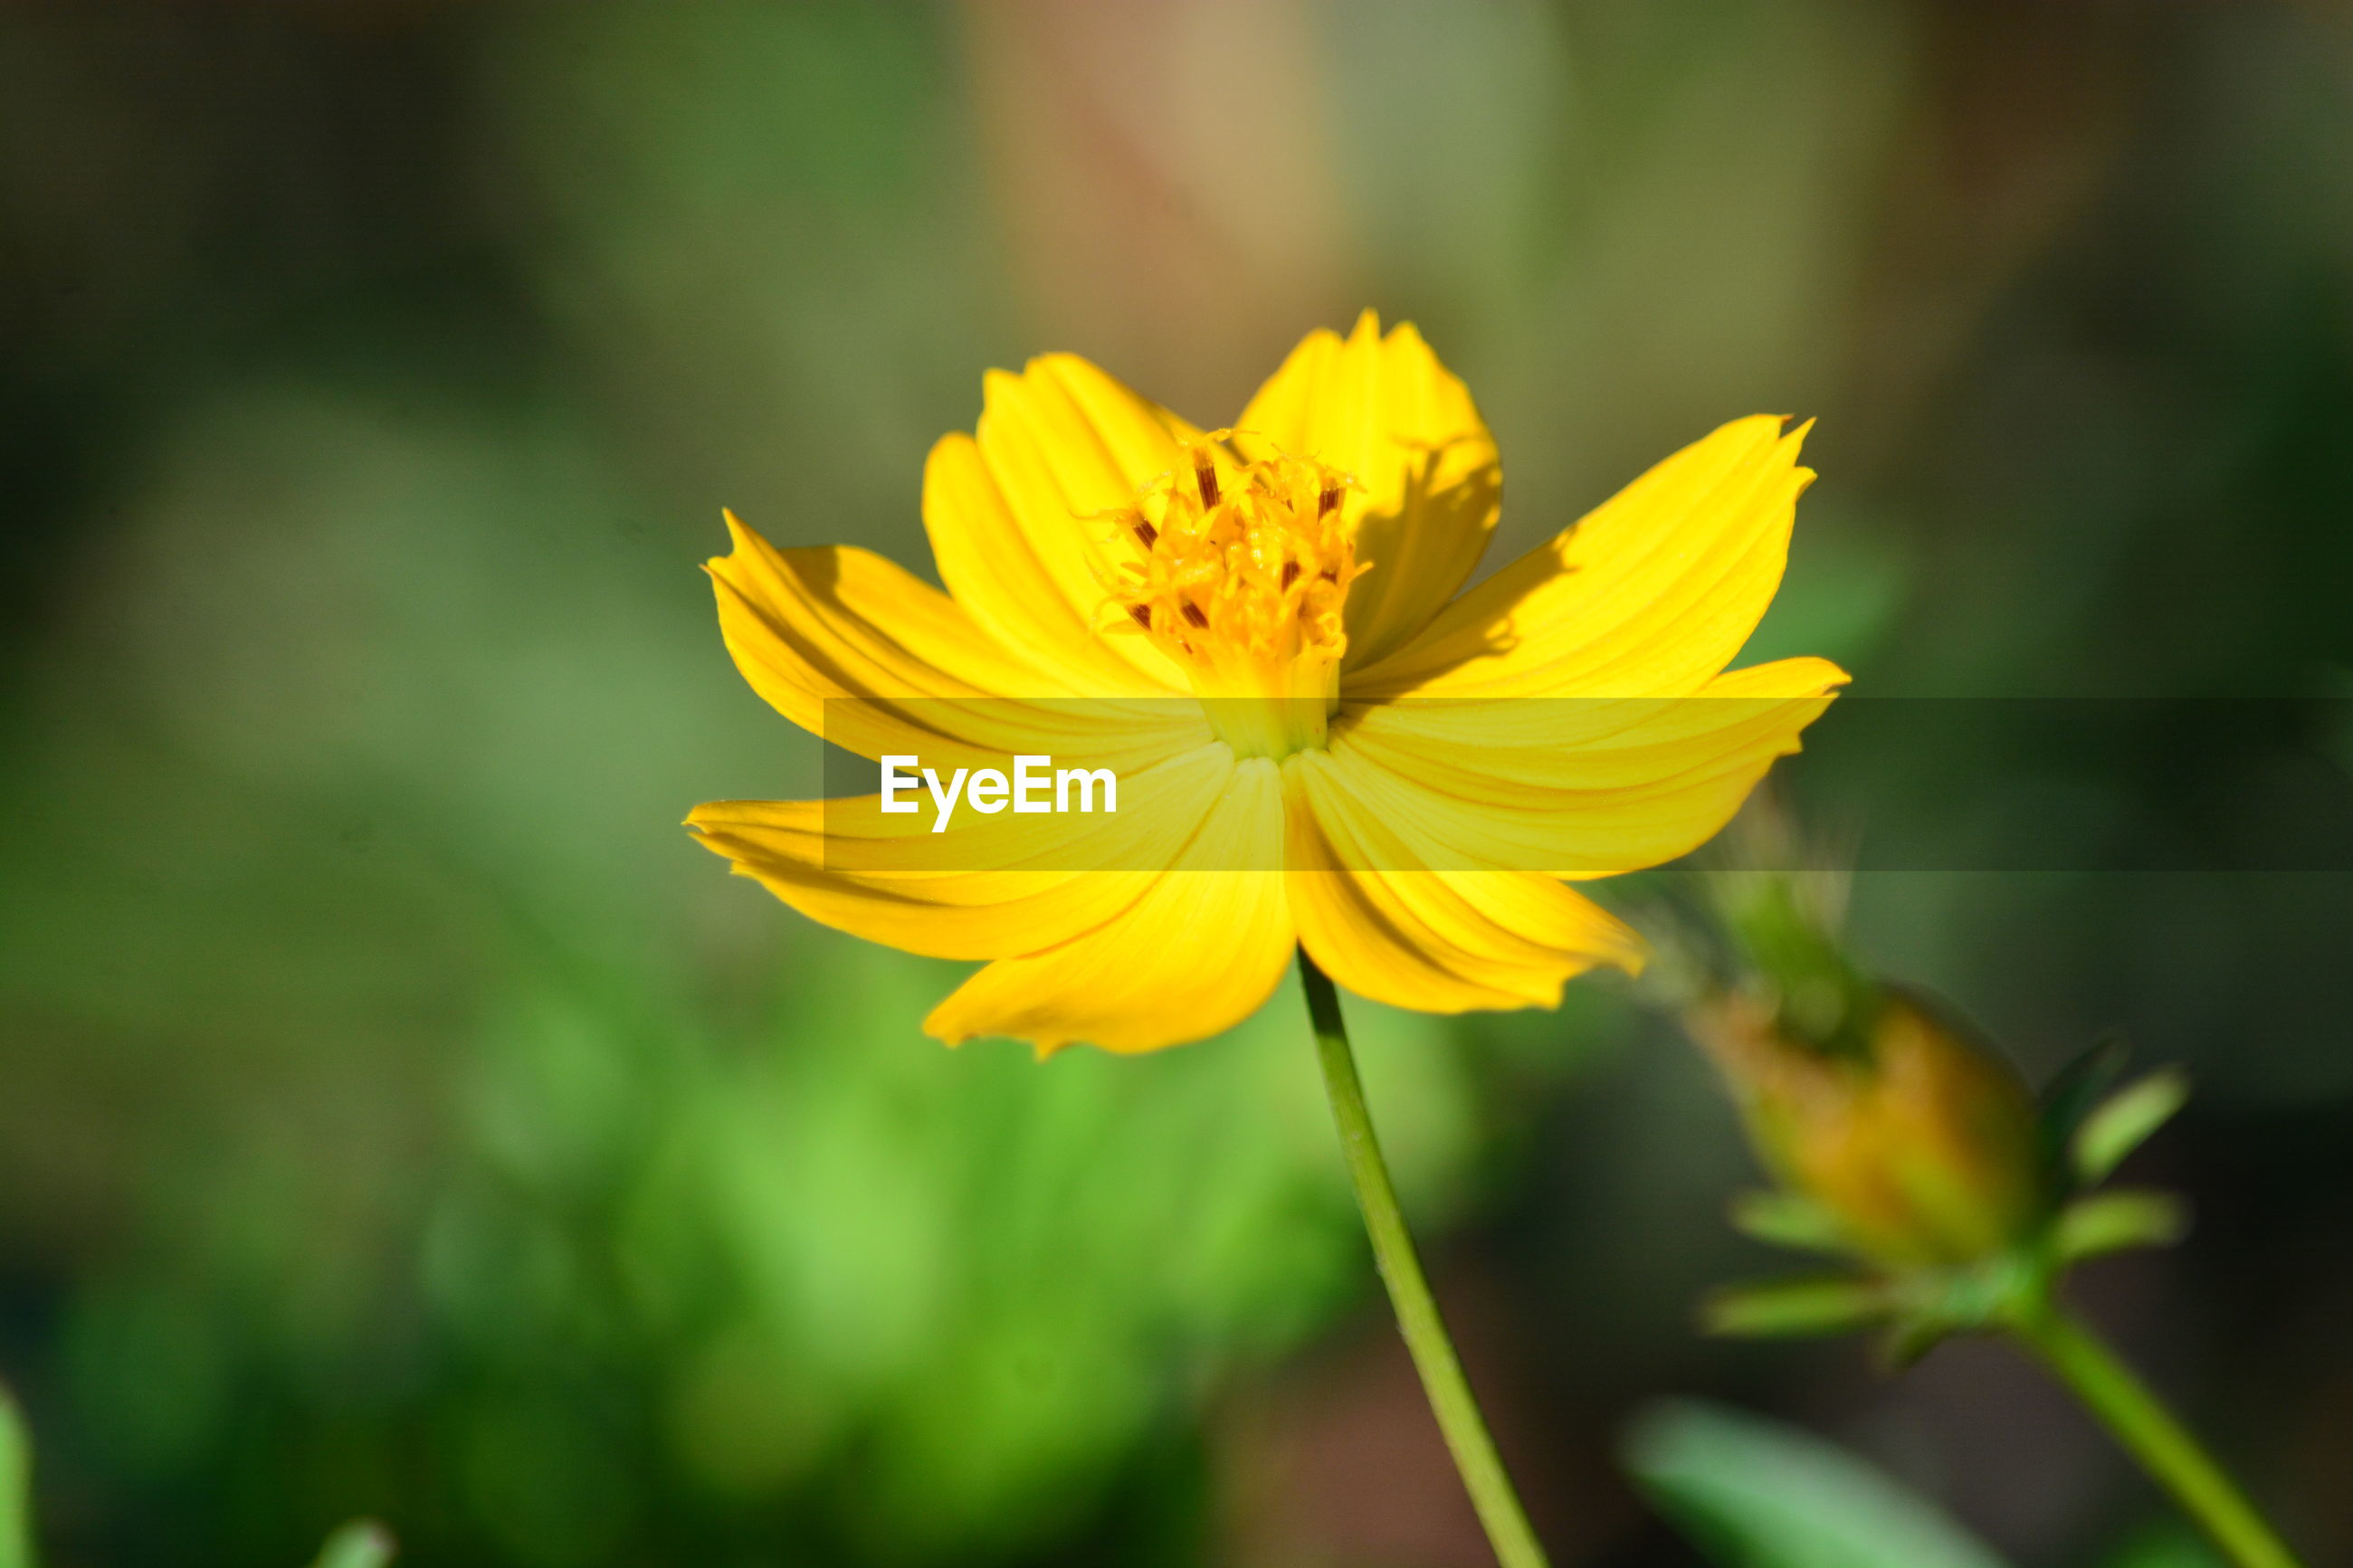 CLOSE-UP OF YELLOW FLOWER PLANT